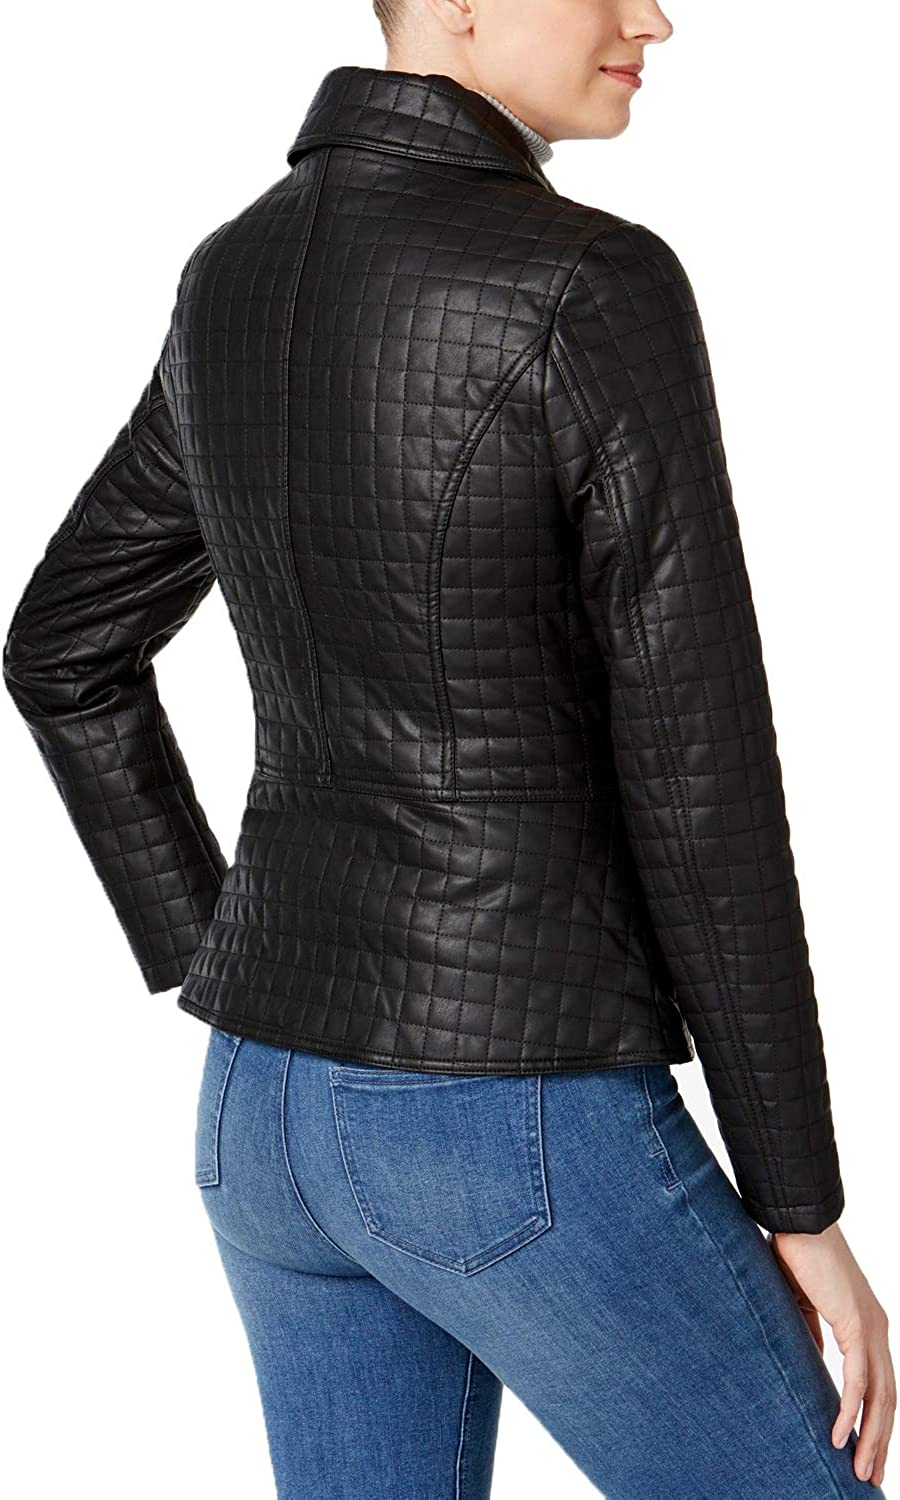 Black, Medium INC International Concepts Quilted Faux-Leather Moto Jacket